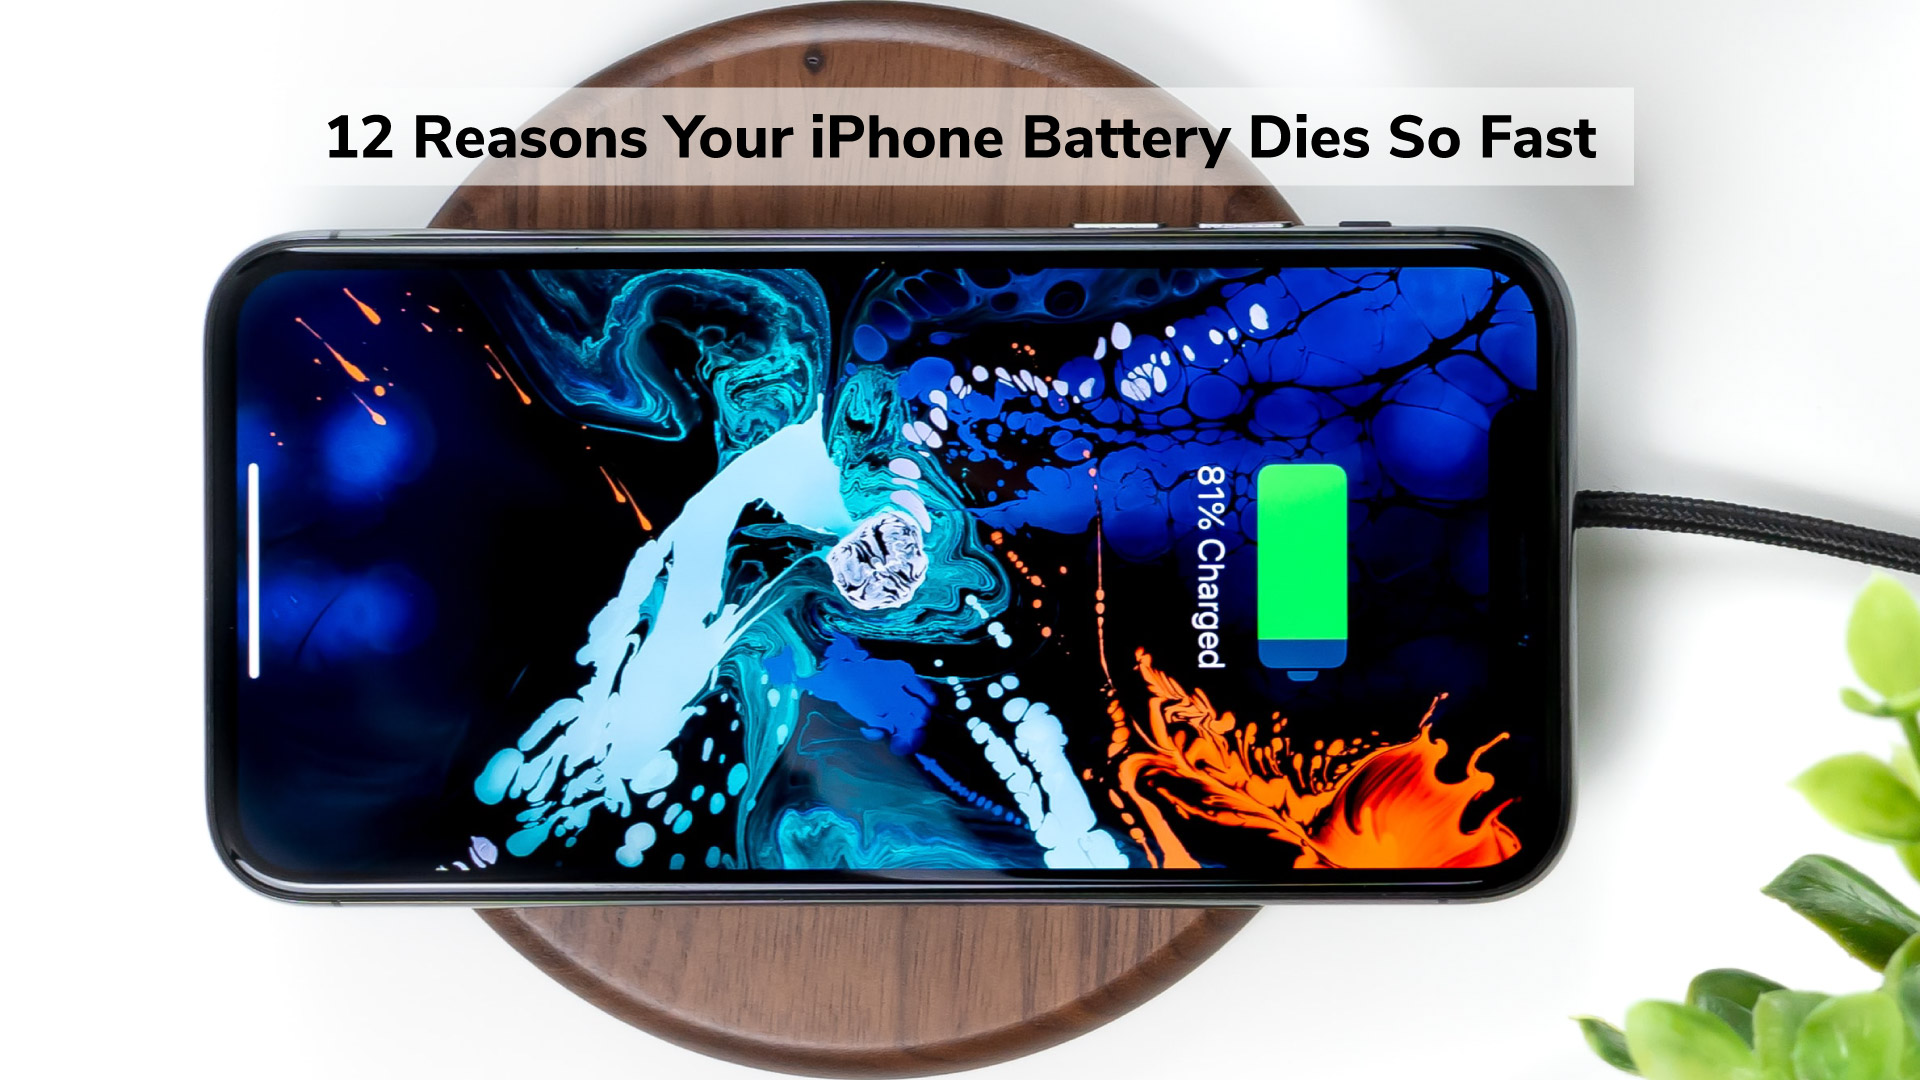 12-Reasons-Your-iPhone-Battery-Dies-So-Fast